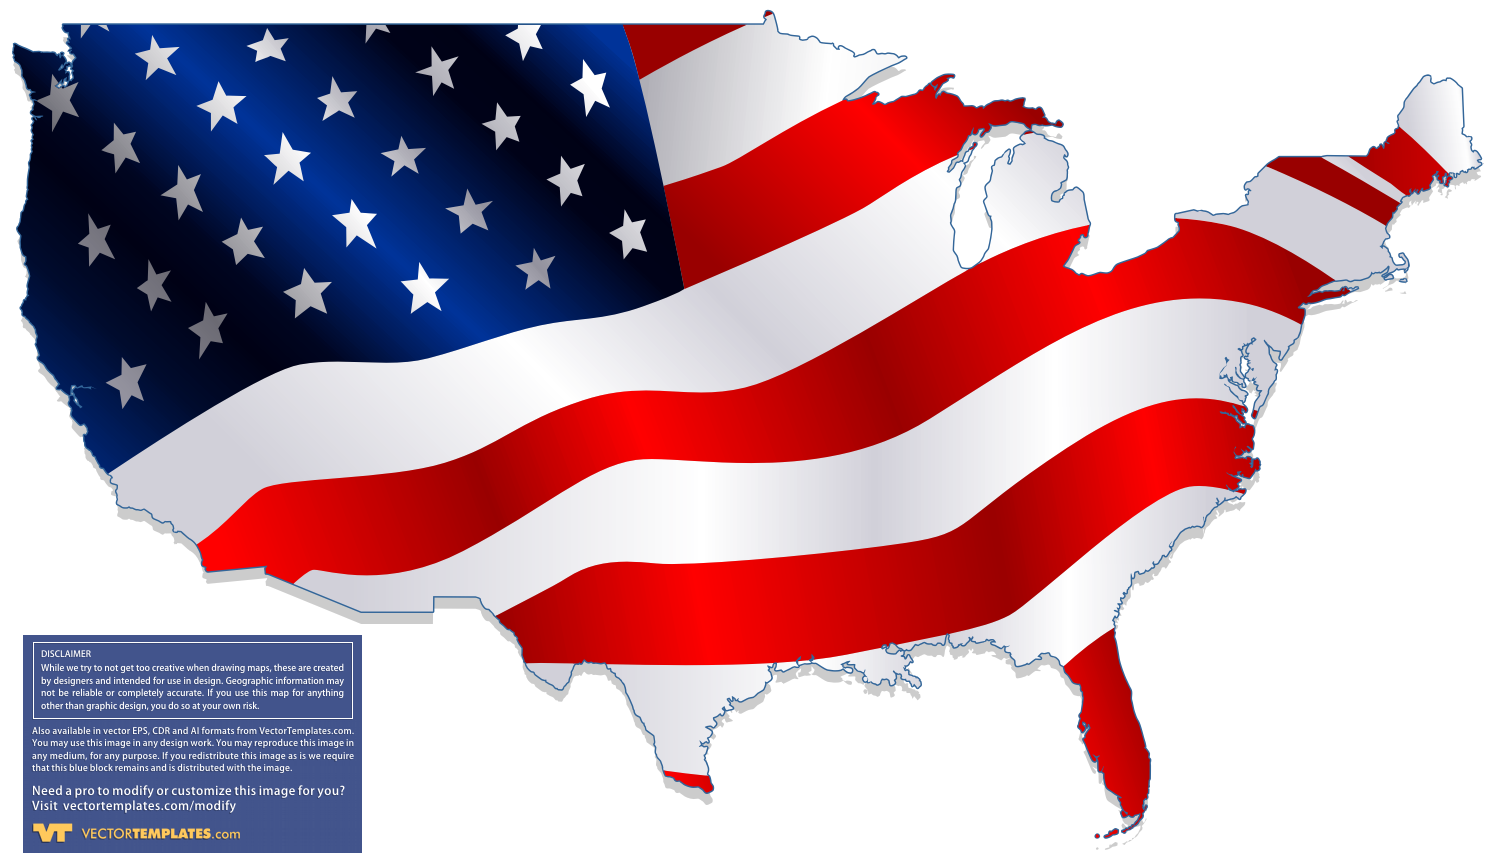 Free Online Resources for Globe, Maps, Wings and Flag Vector Designs